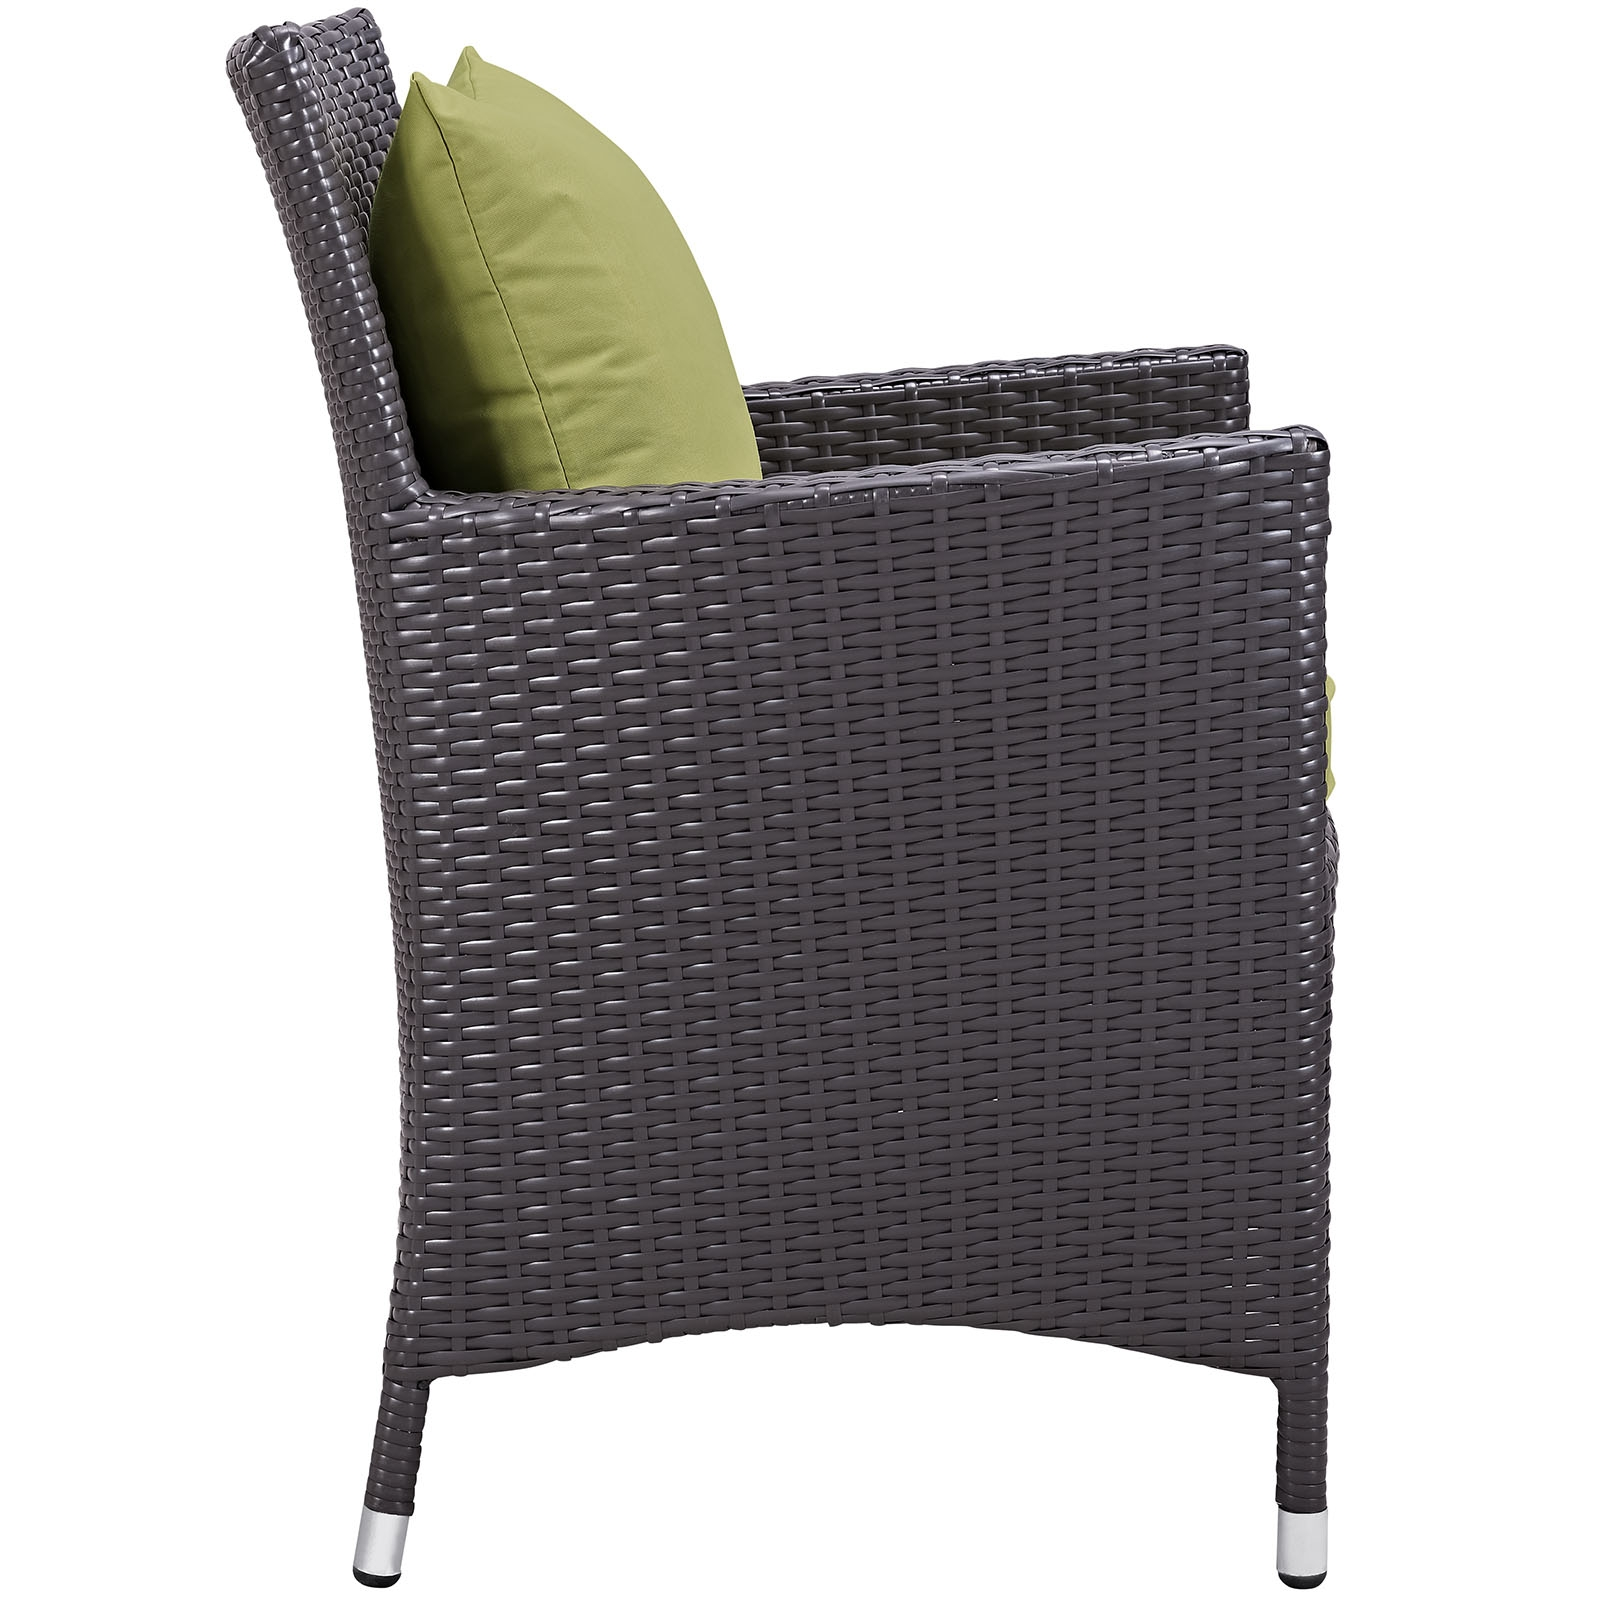 Rattan bistro chair side view